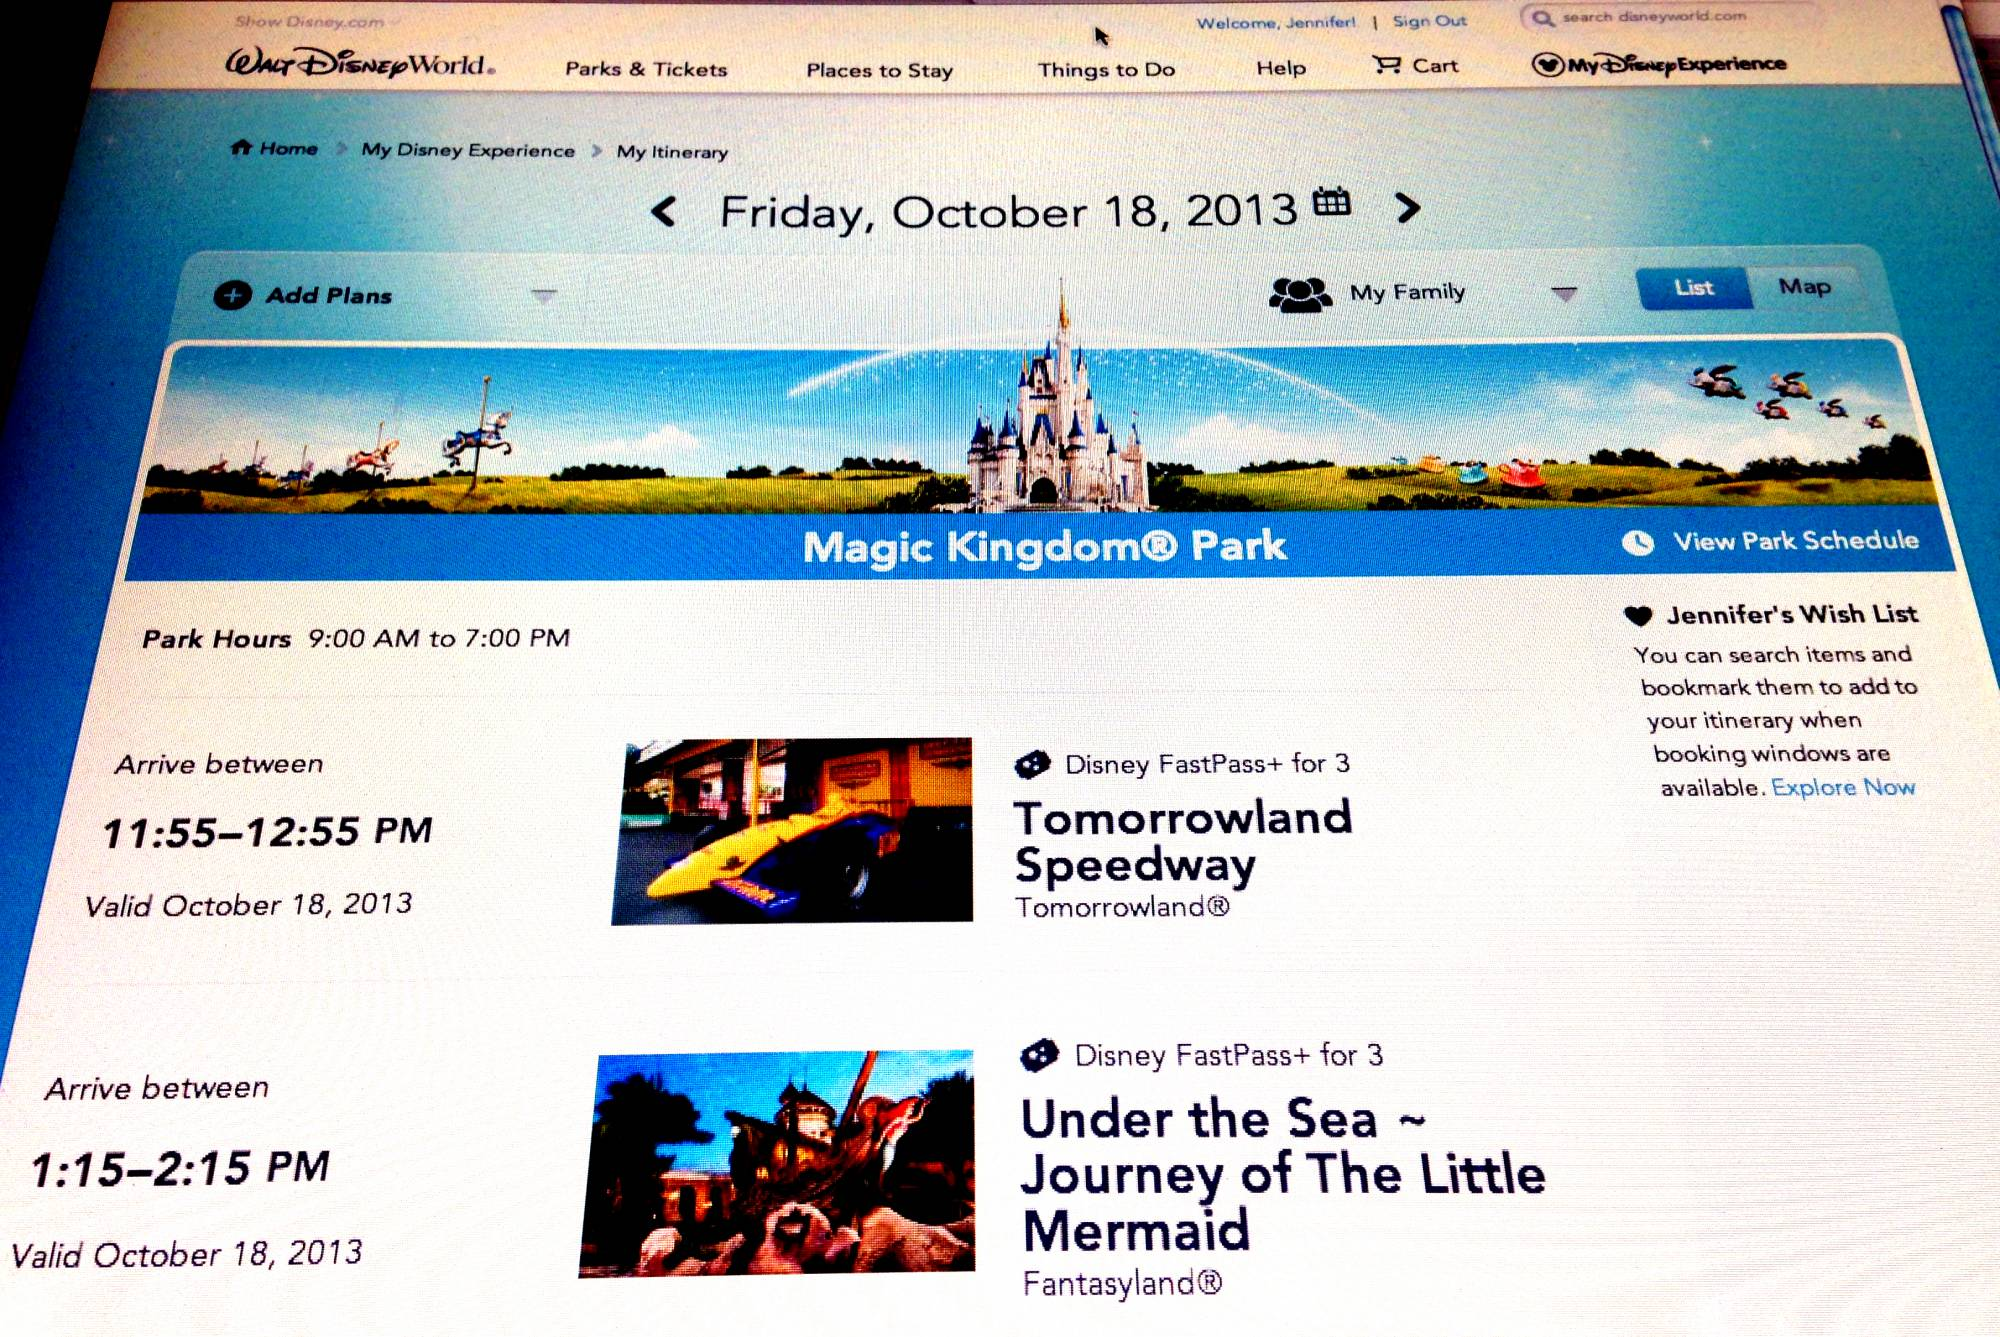 Learn about Walt Disney World's latest technology - My Disney Experience |PassPorter.com